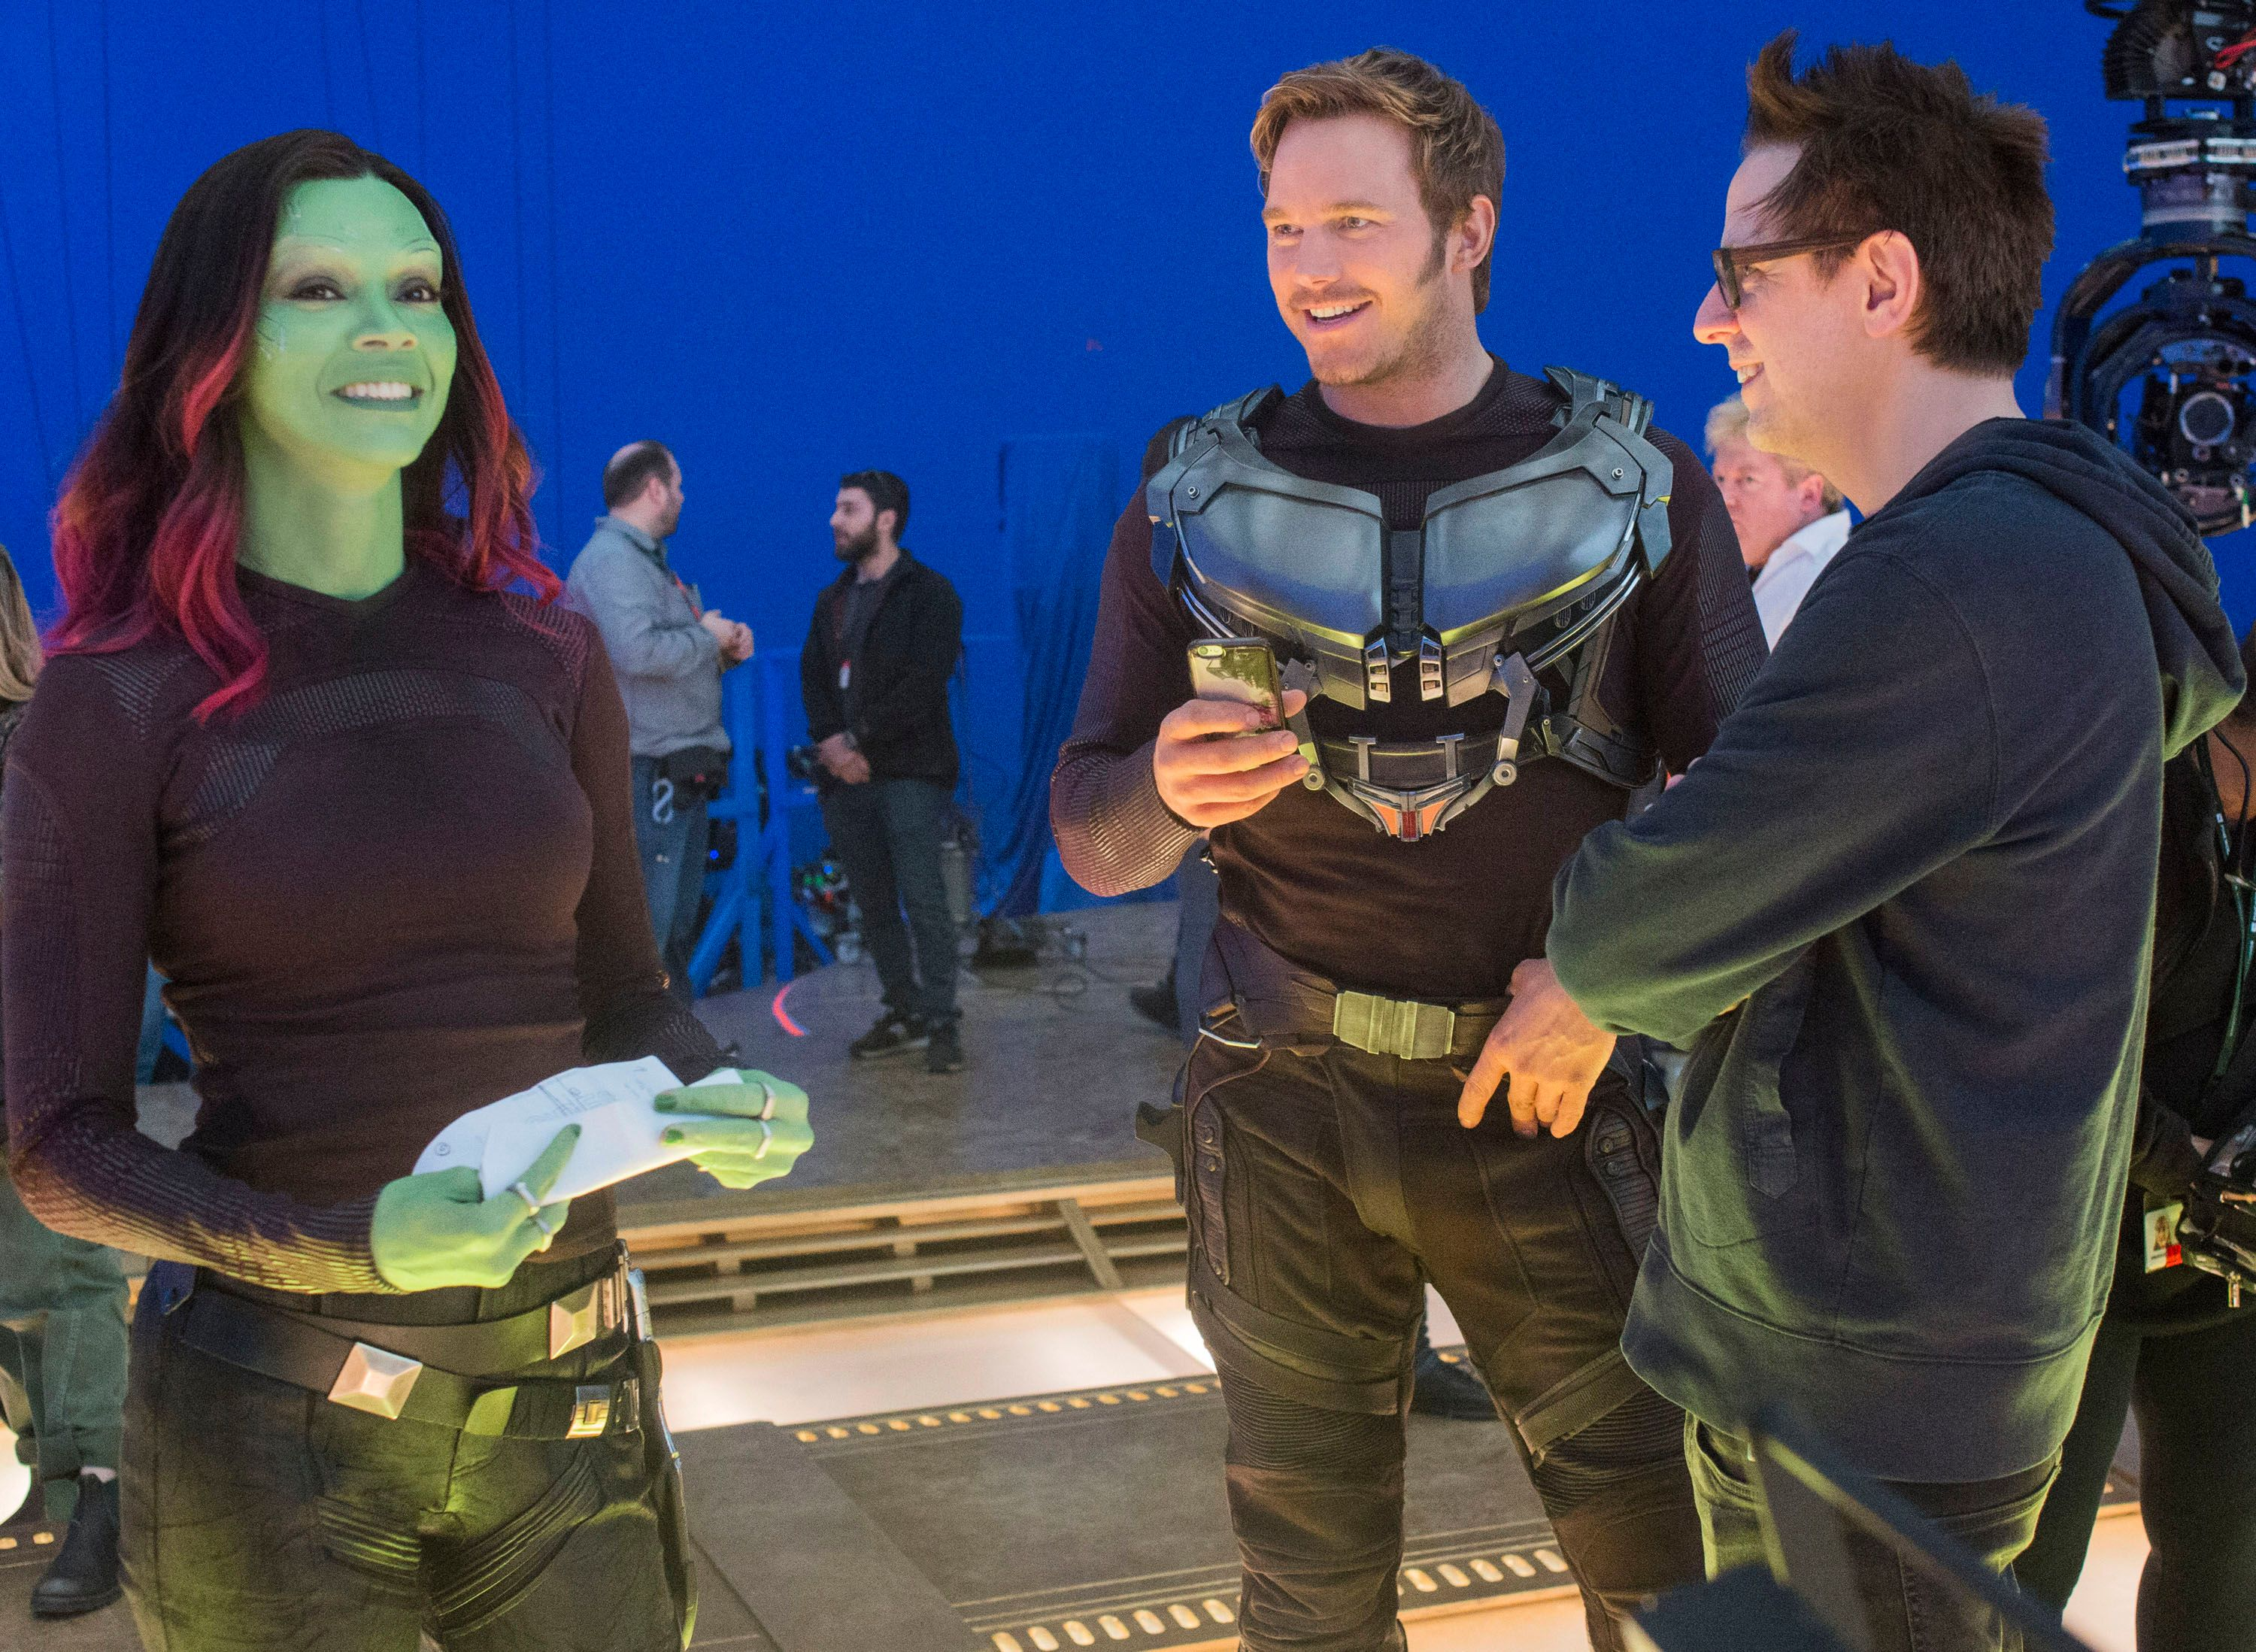 Guardians of the Galaxy 3: James Gunn Talks Filming Dates, Title